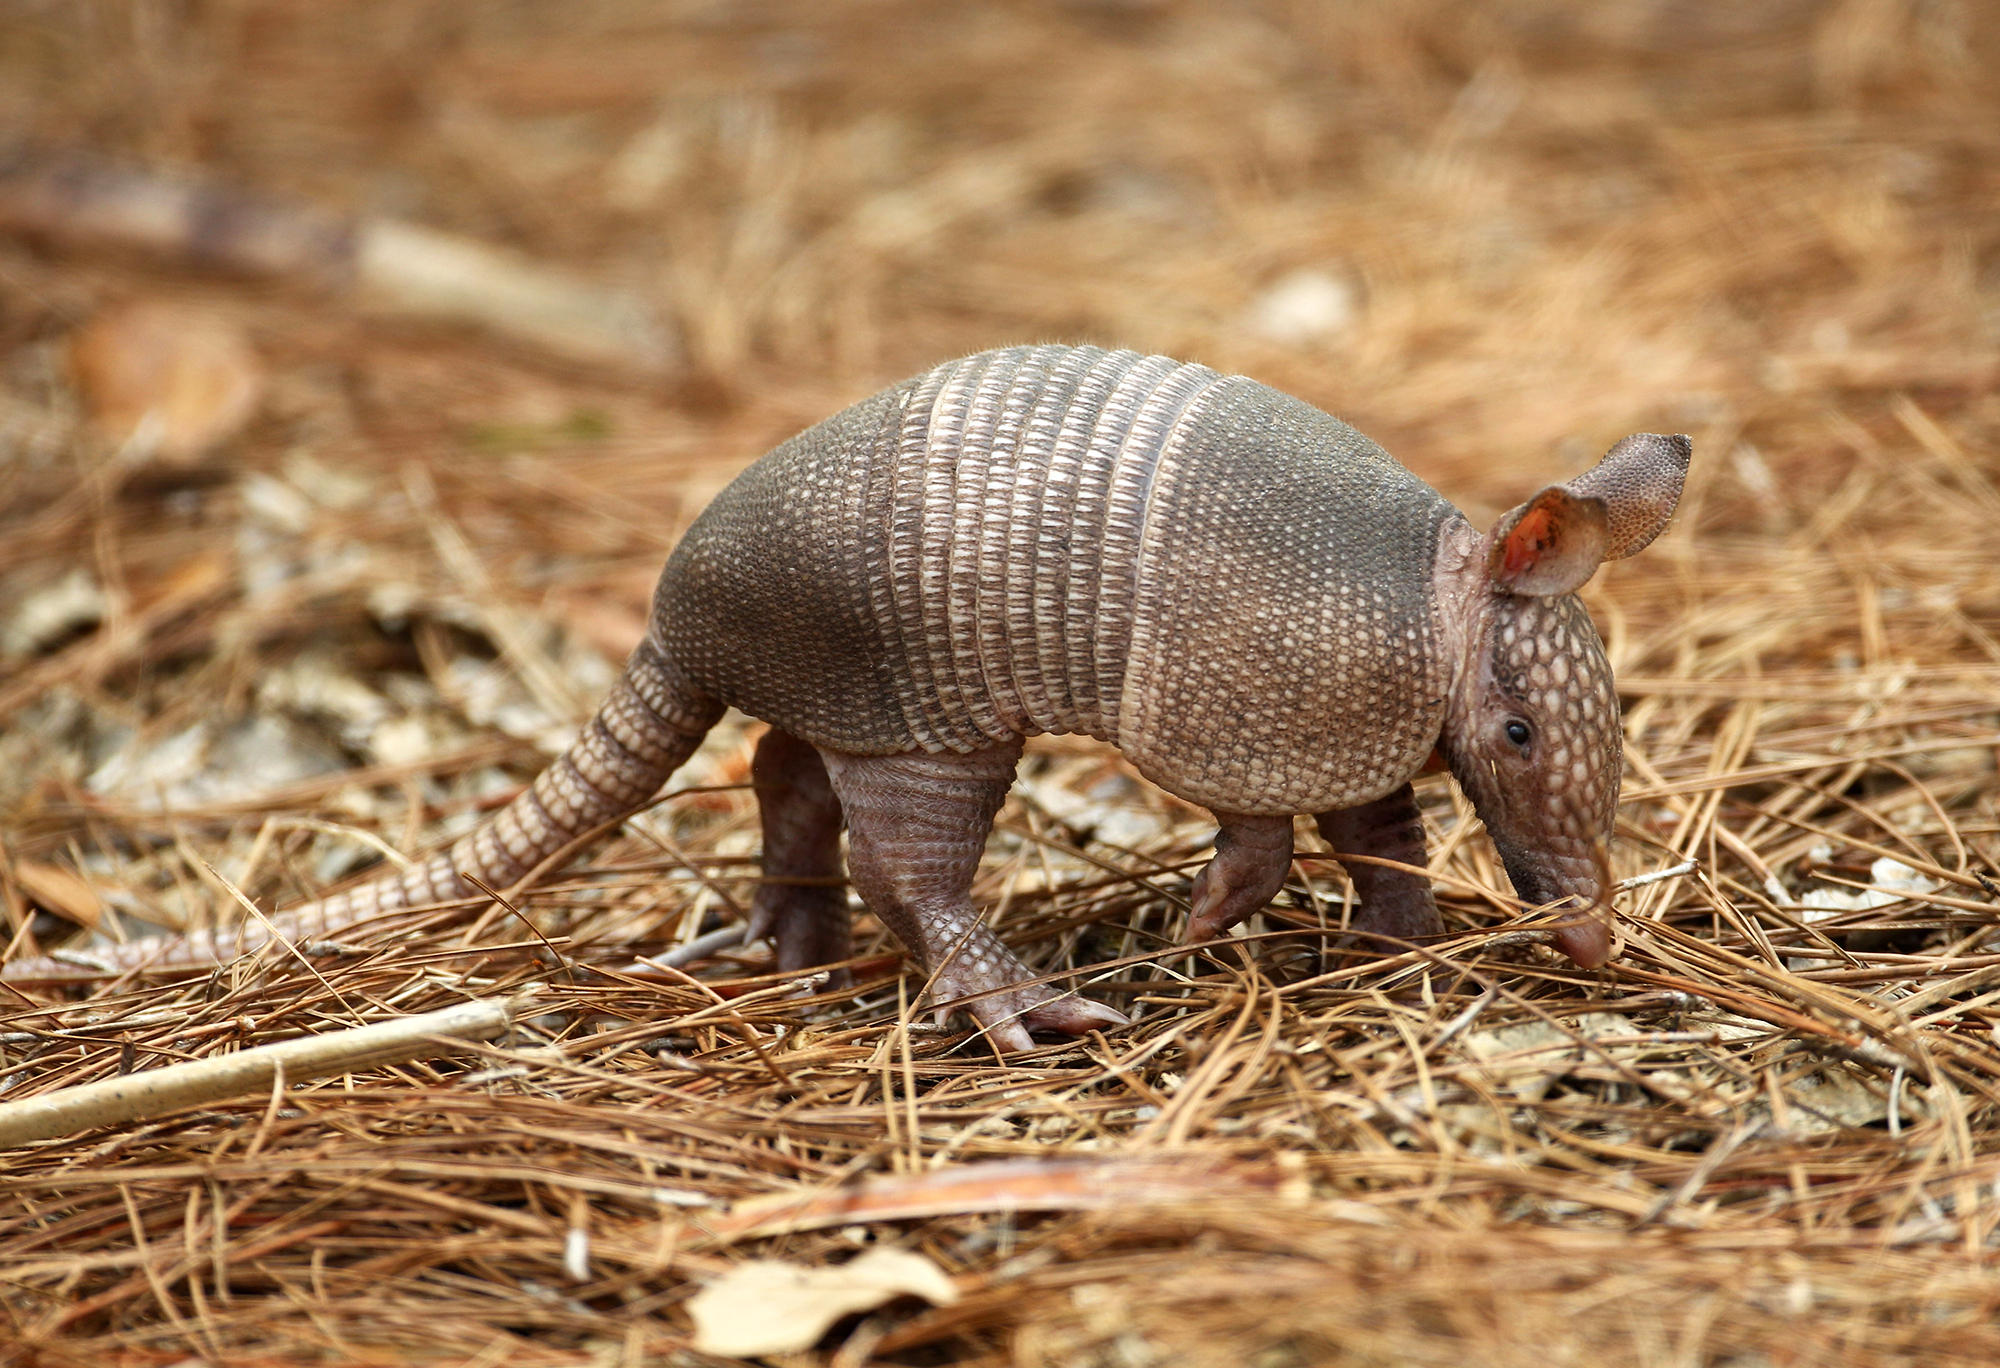 Leprosy From An Armadillo? That's An Unlikely Peccadillo